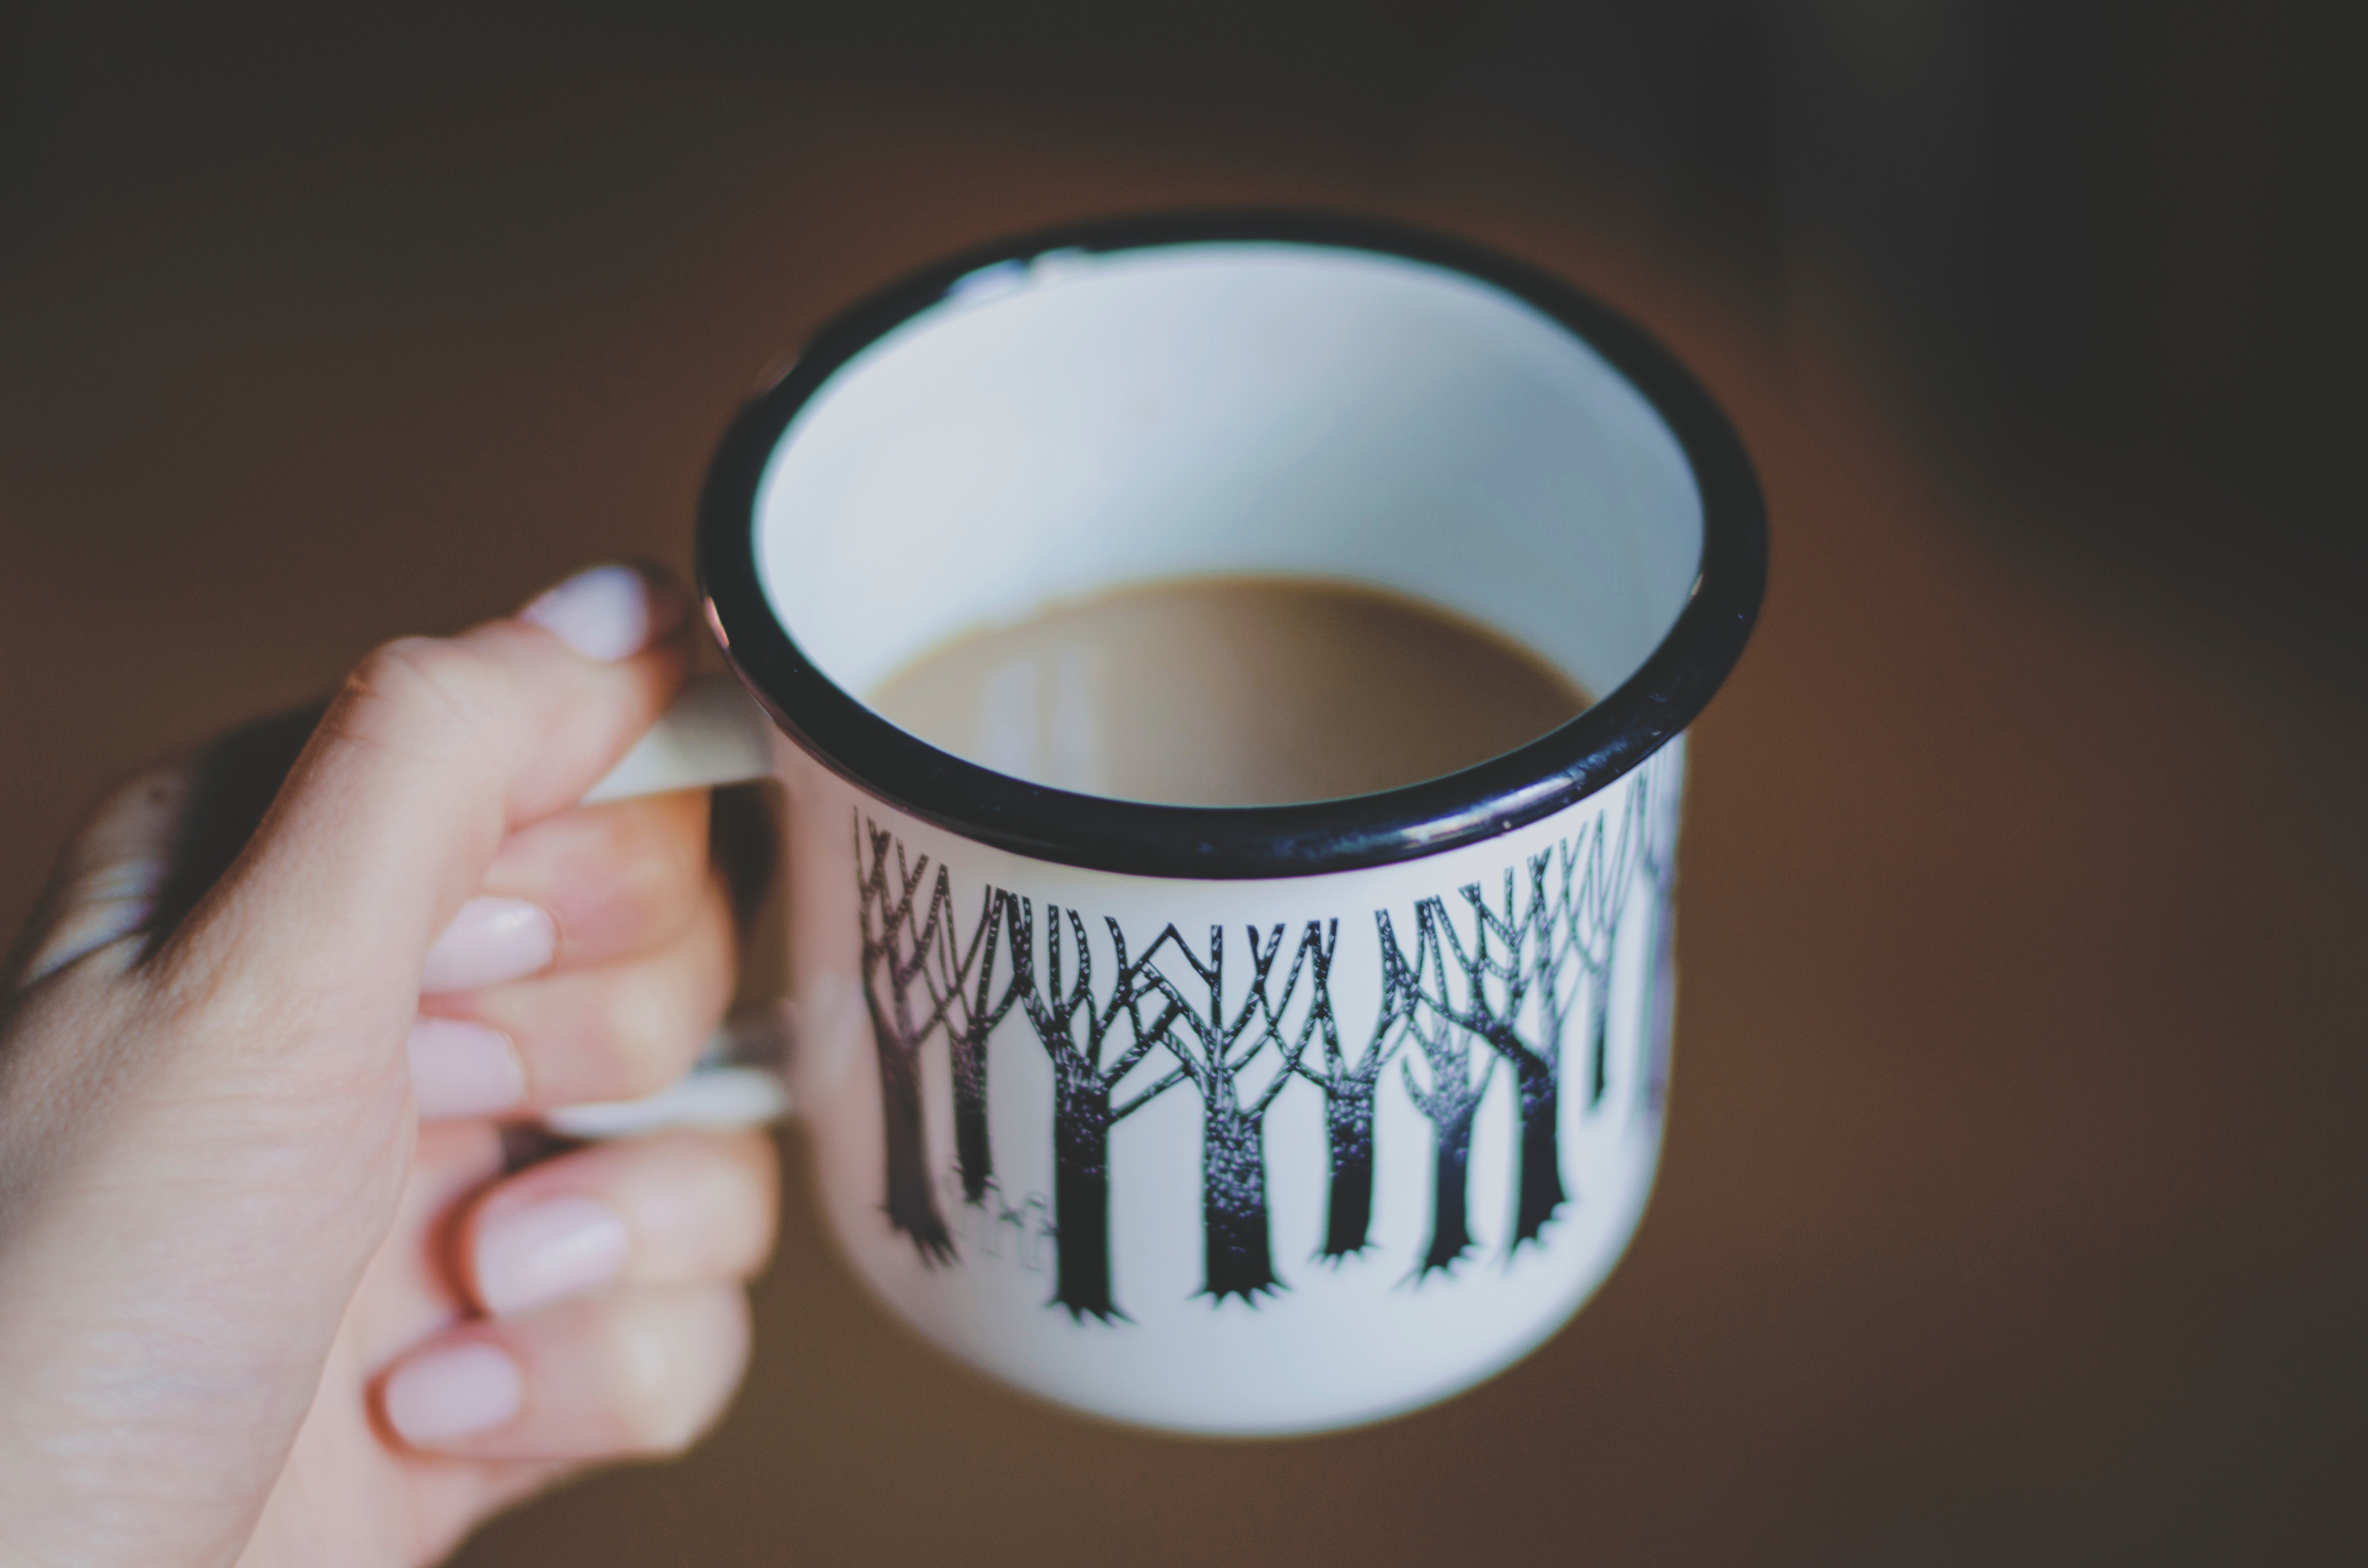 the surprising case for not cleaning your office coffee mug depends on what you actually drink out of it the office coffee mugs u38 coffee